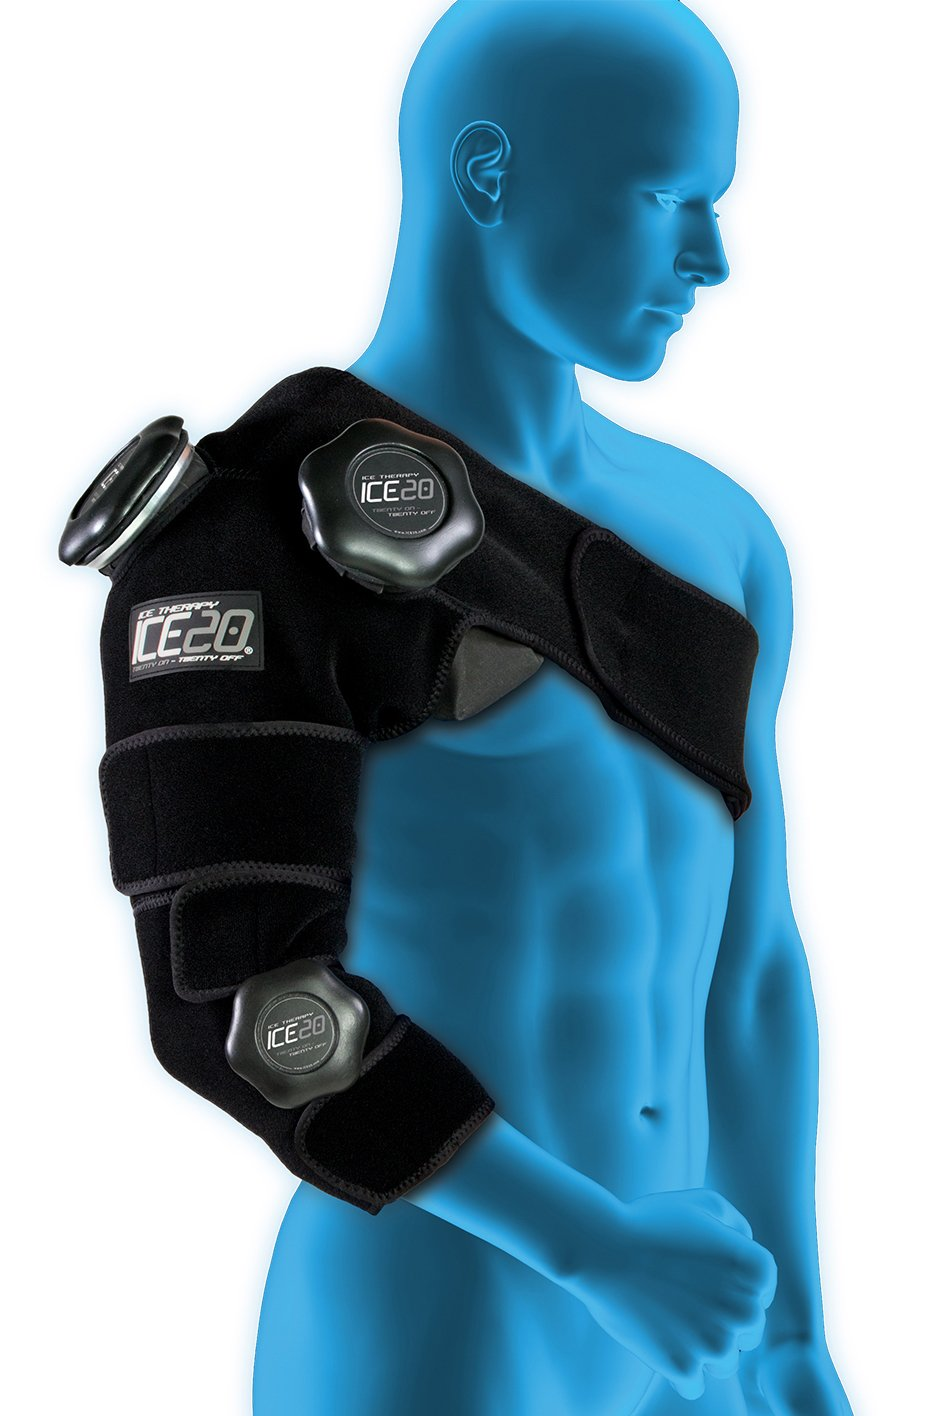 Ice20 Combo Arm Ice Therapy Wrap Sports Outdoors Cool Cold Ice2 Cooling Pad 156 Inch